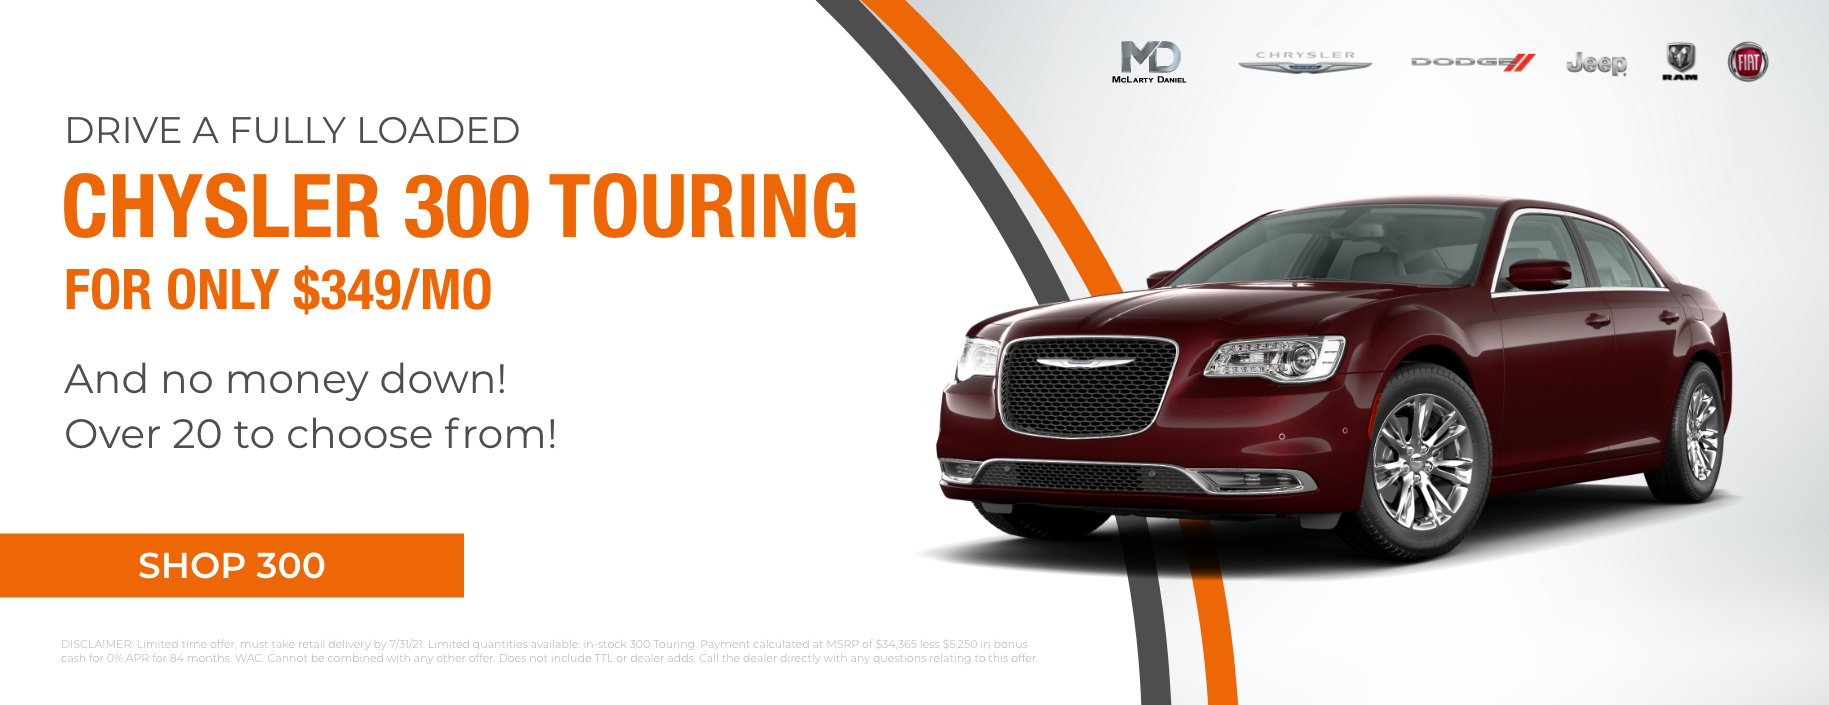 DRIVE A FULLY LOADED CHRYSLER 300 TOURING FOR ONLY $349/mo and no money down! Over 20 to choose from!